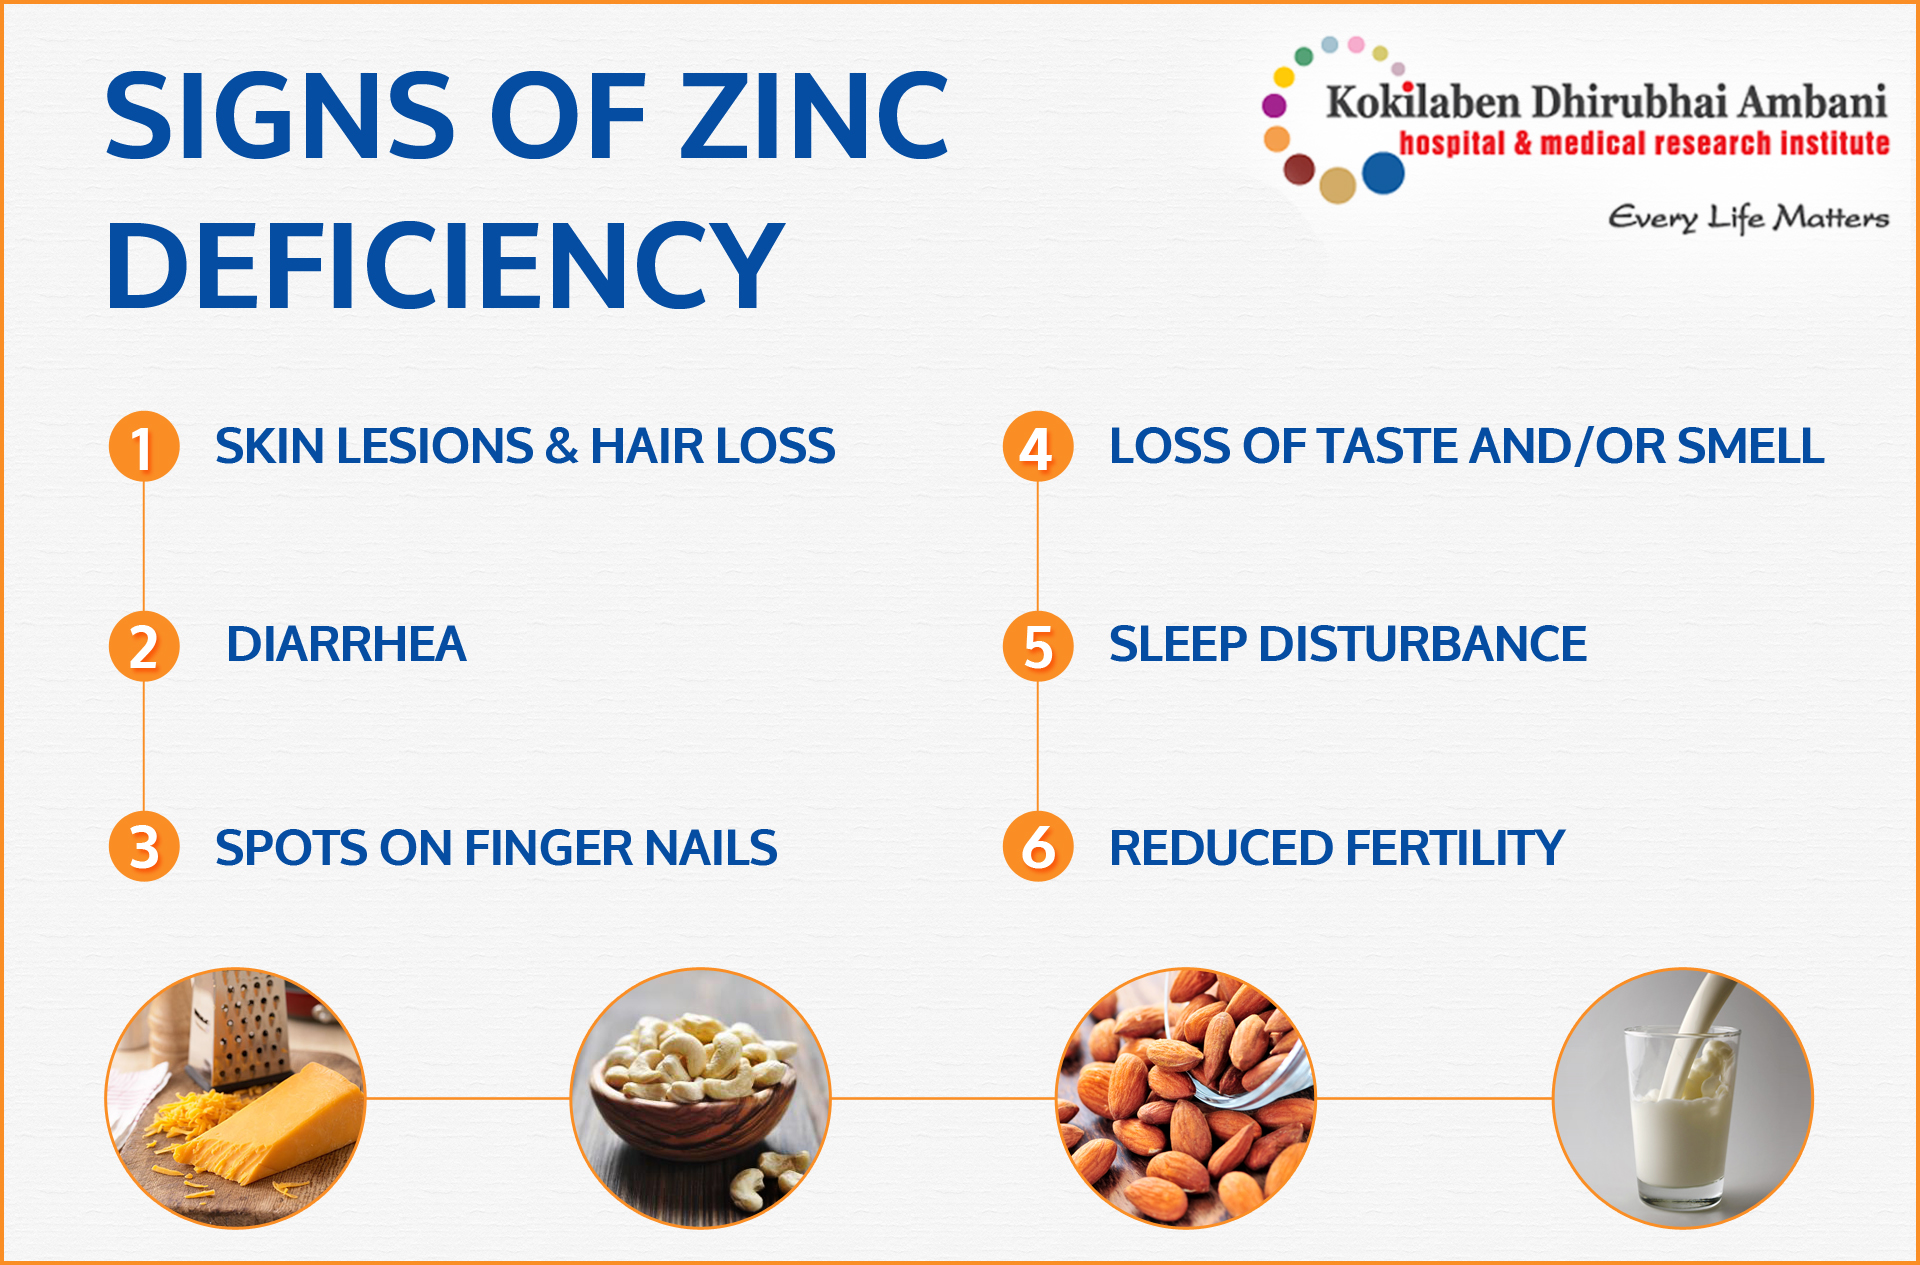 Signs of Zinc Deficiency - Health Tips from Kokilaben Hospital